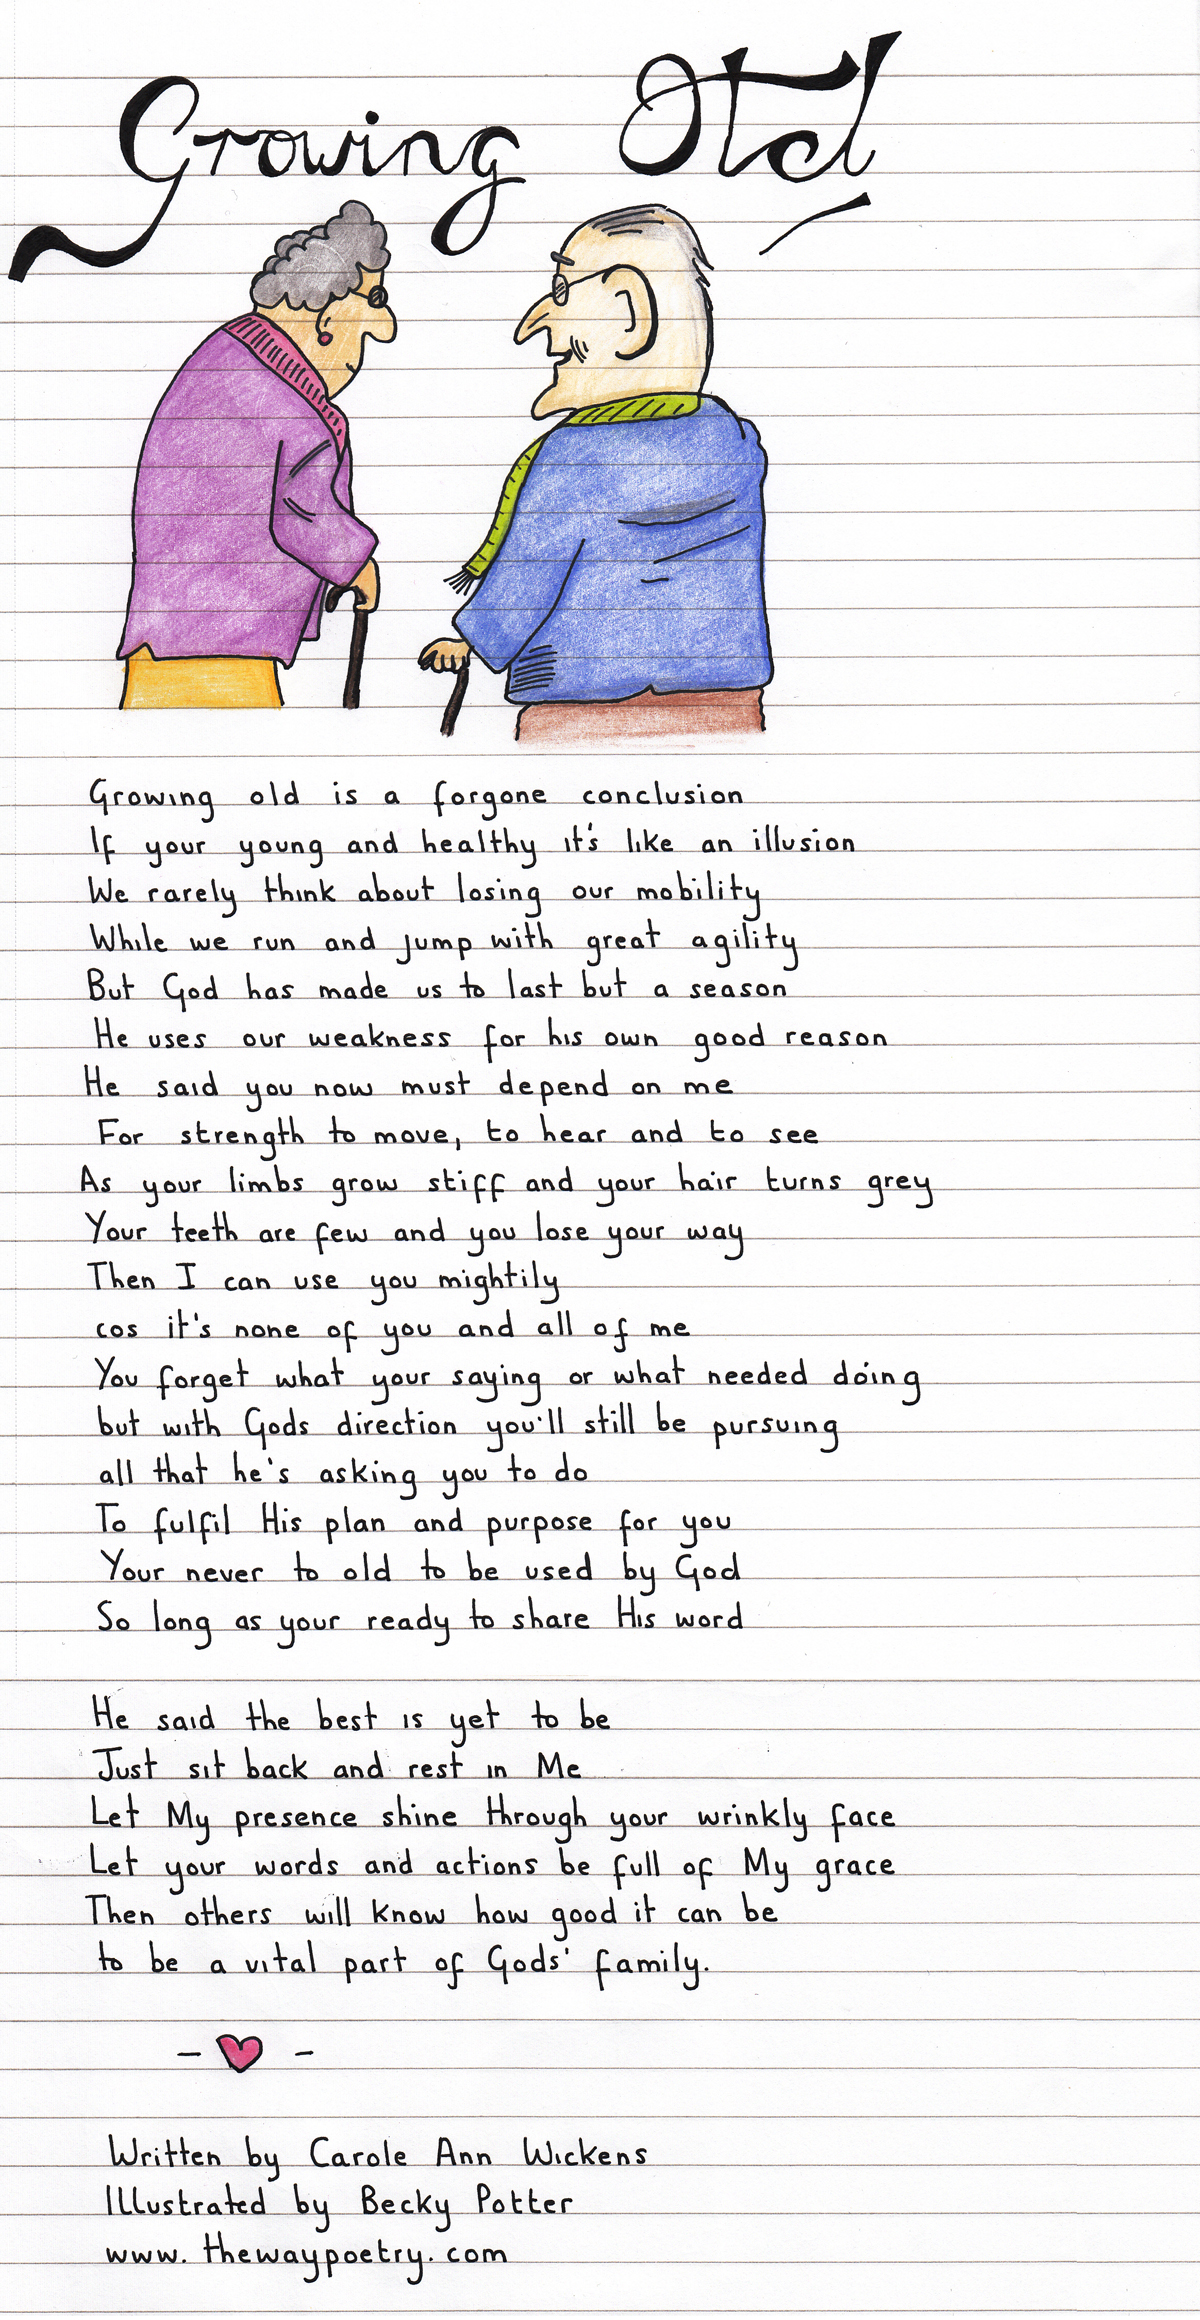 Growing Old by Carole Ann Wickens